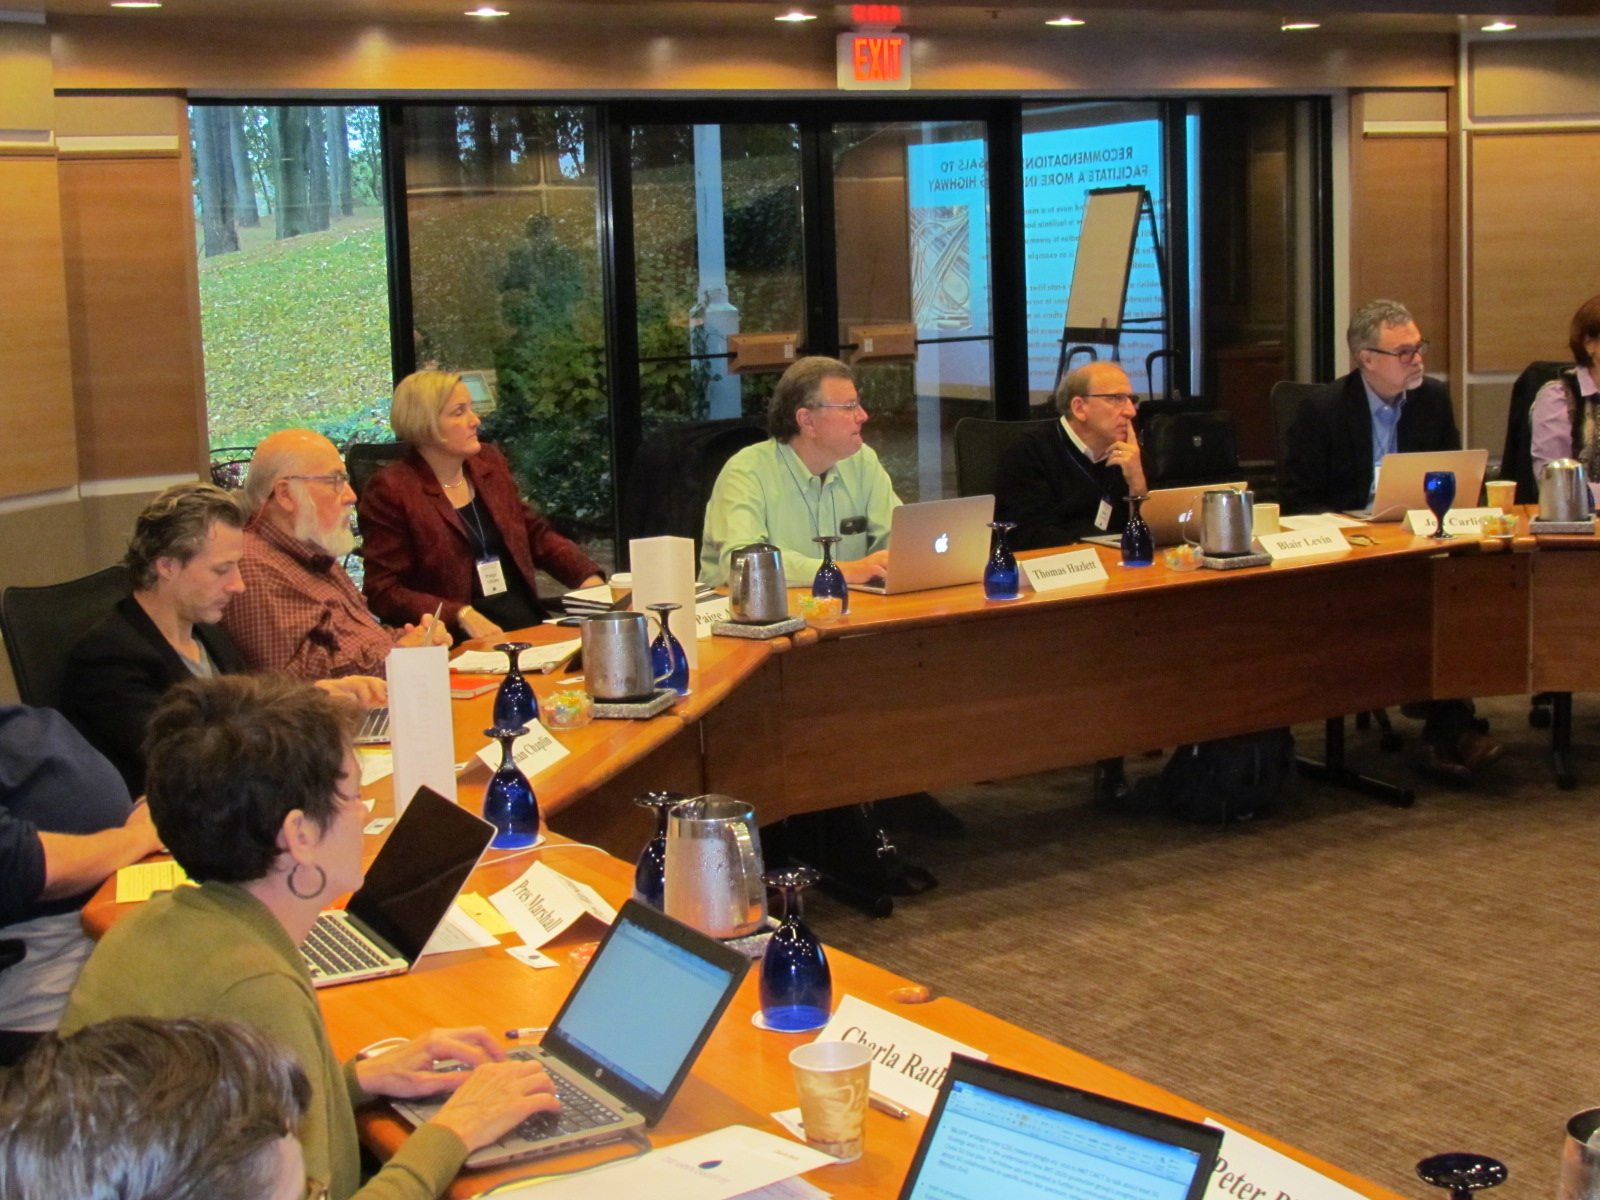 2016 Roundtable on Spectrum Policy